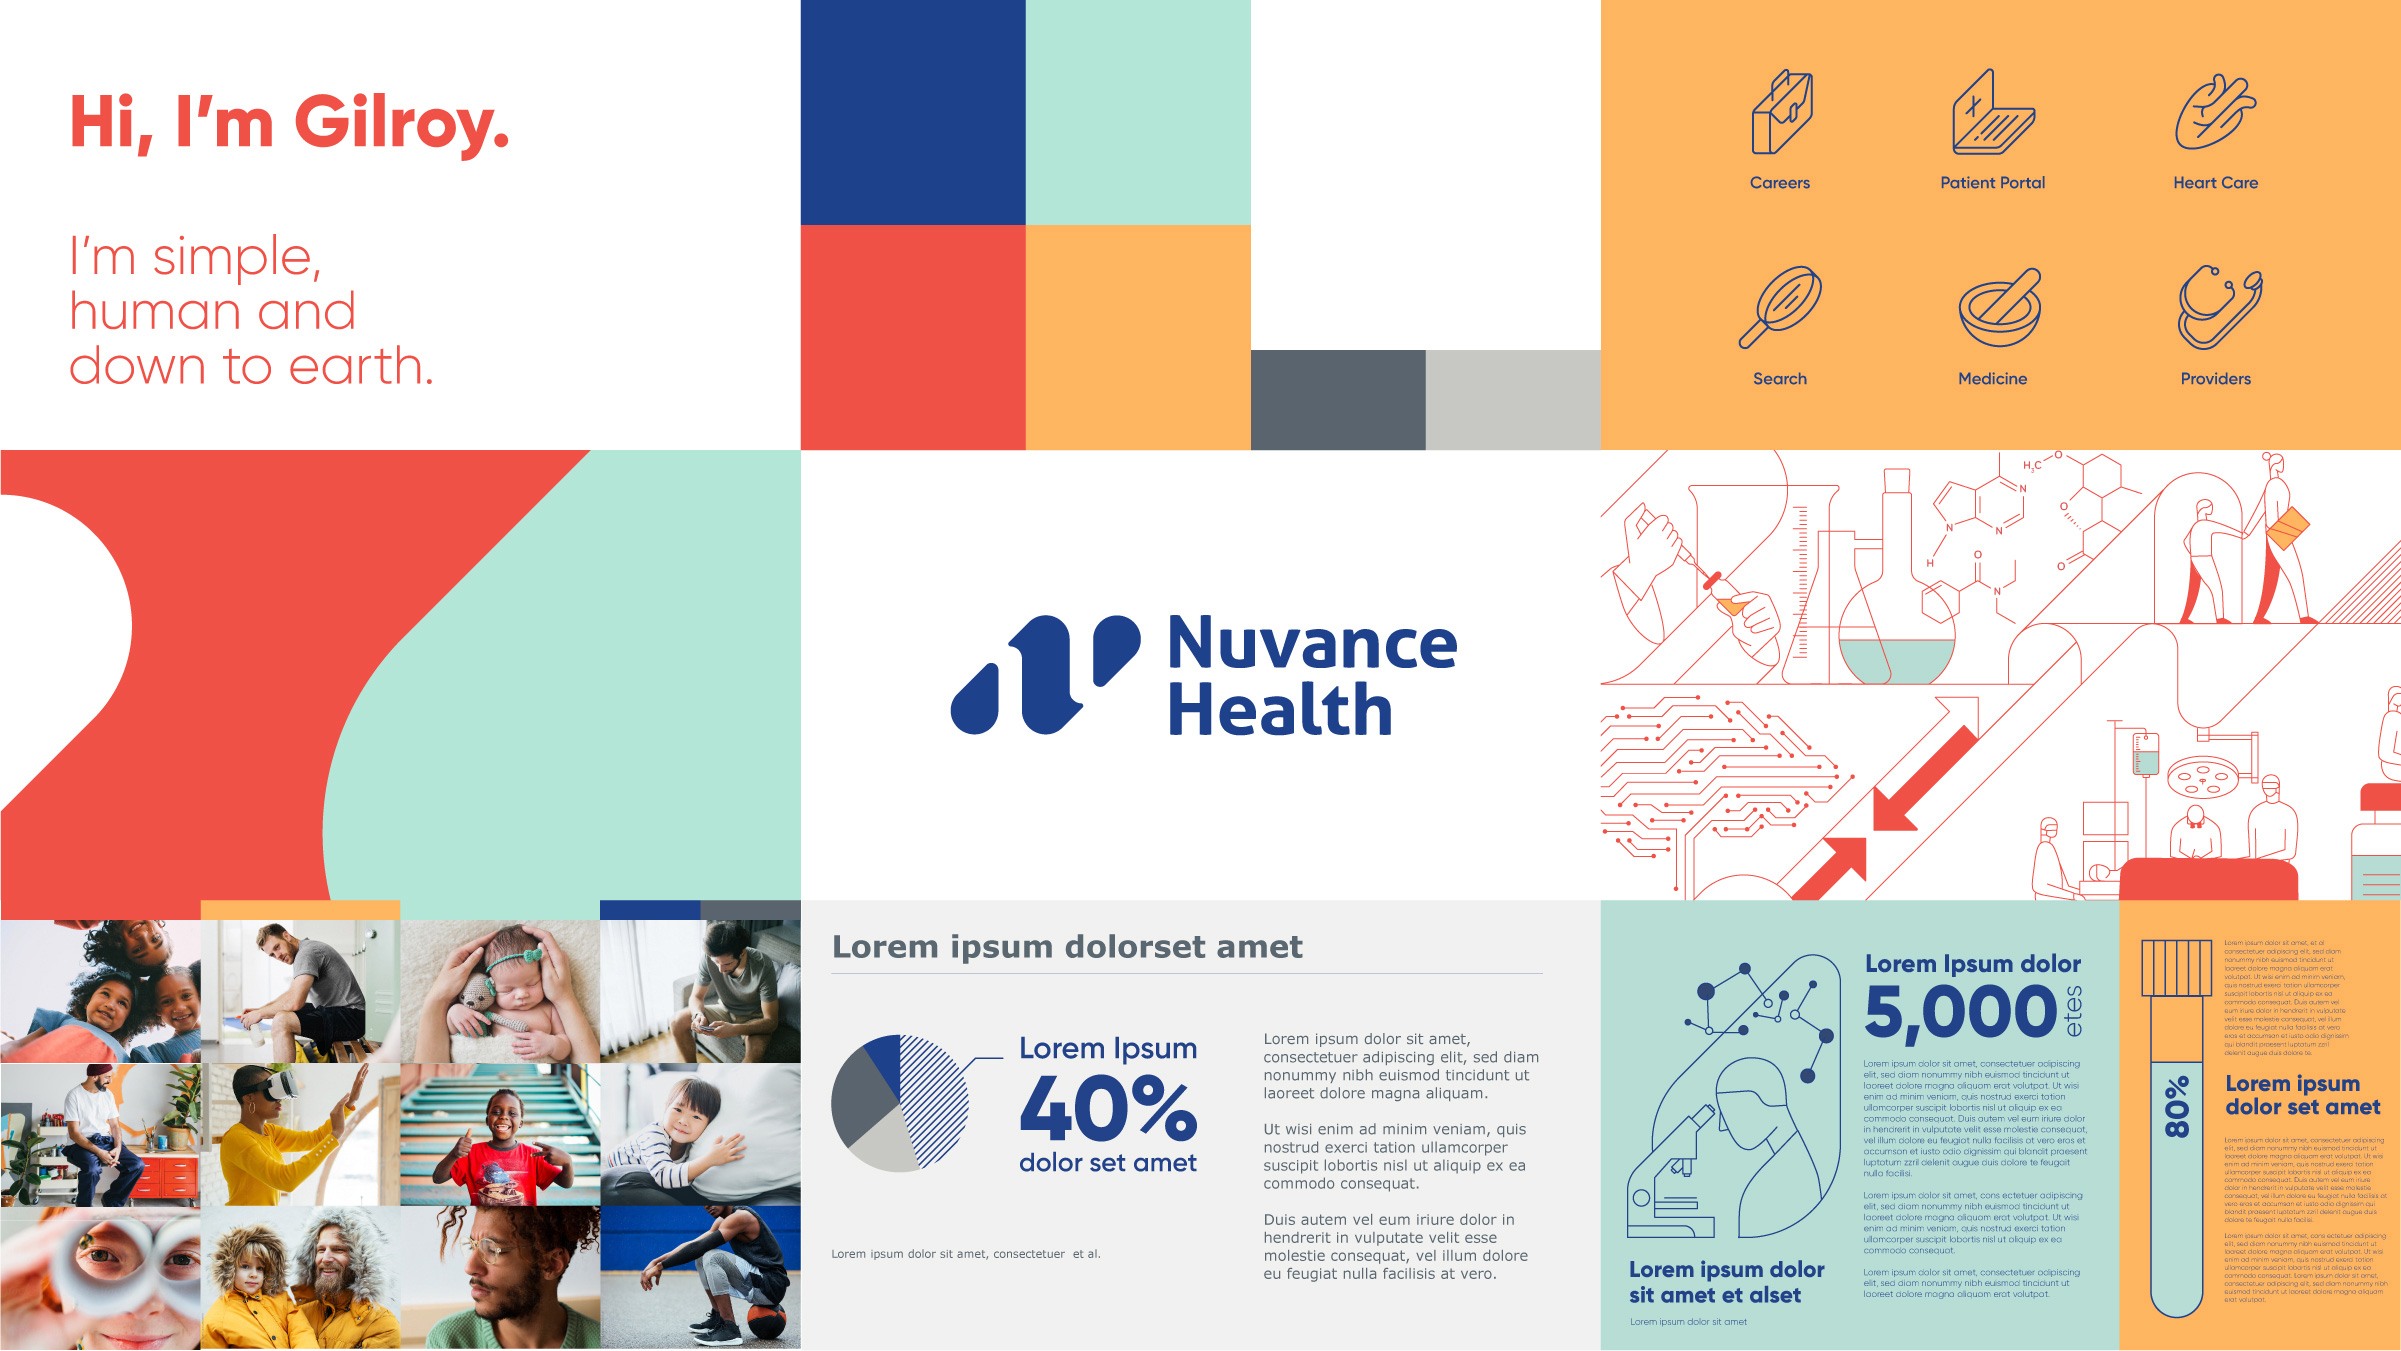 New Logo and Identity for Nuvance Health by Monigle